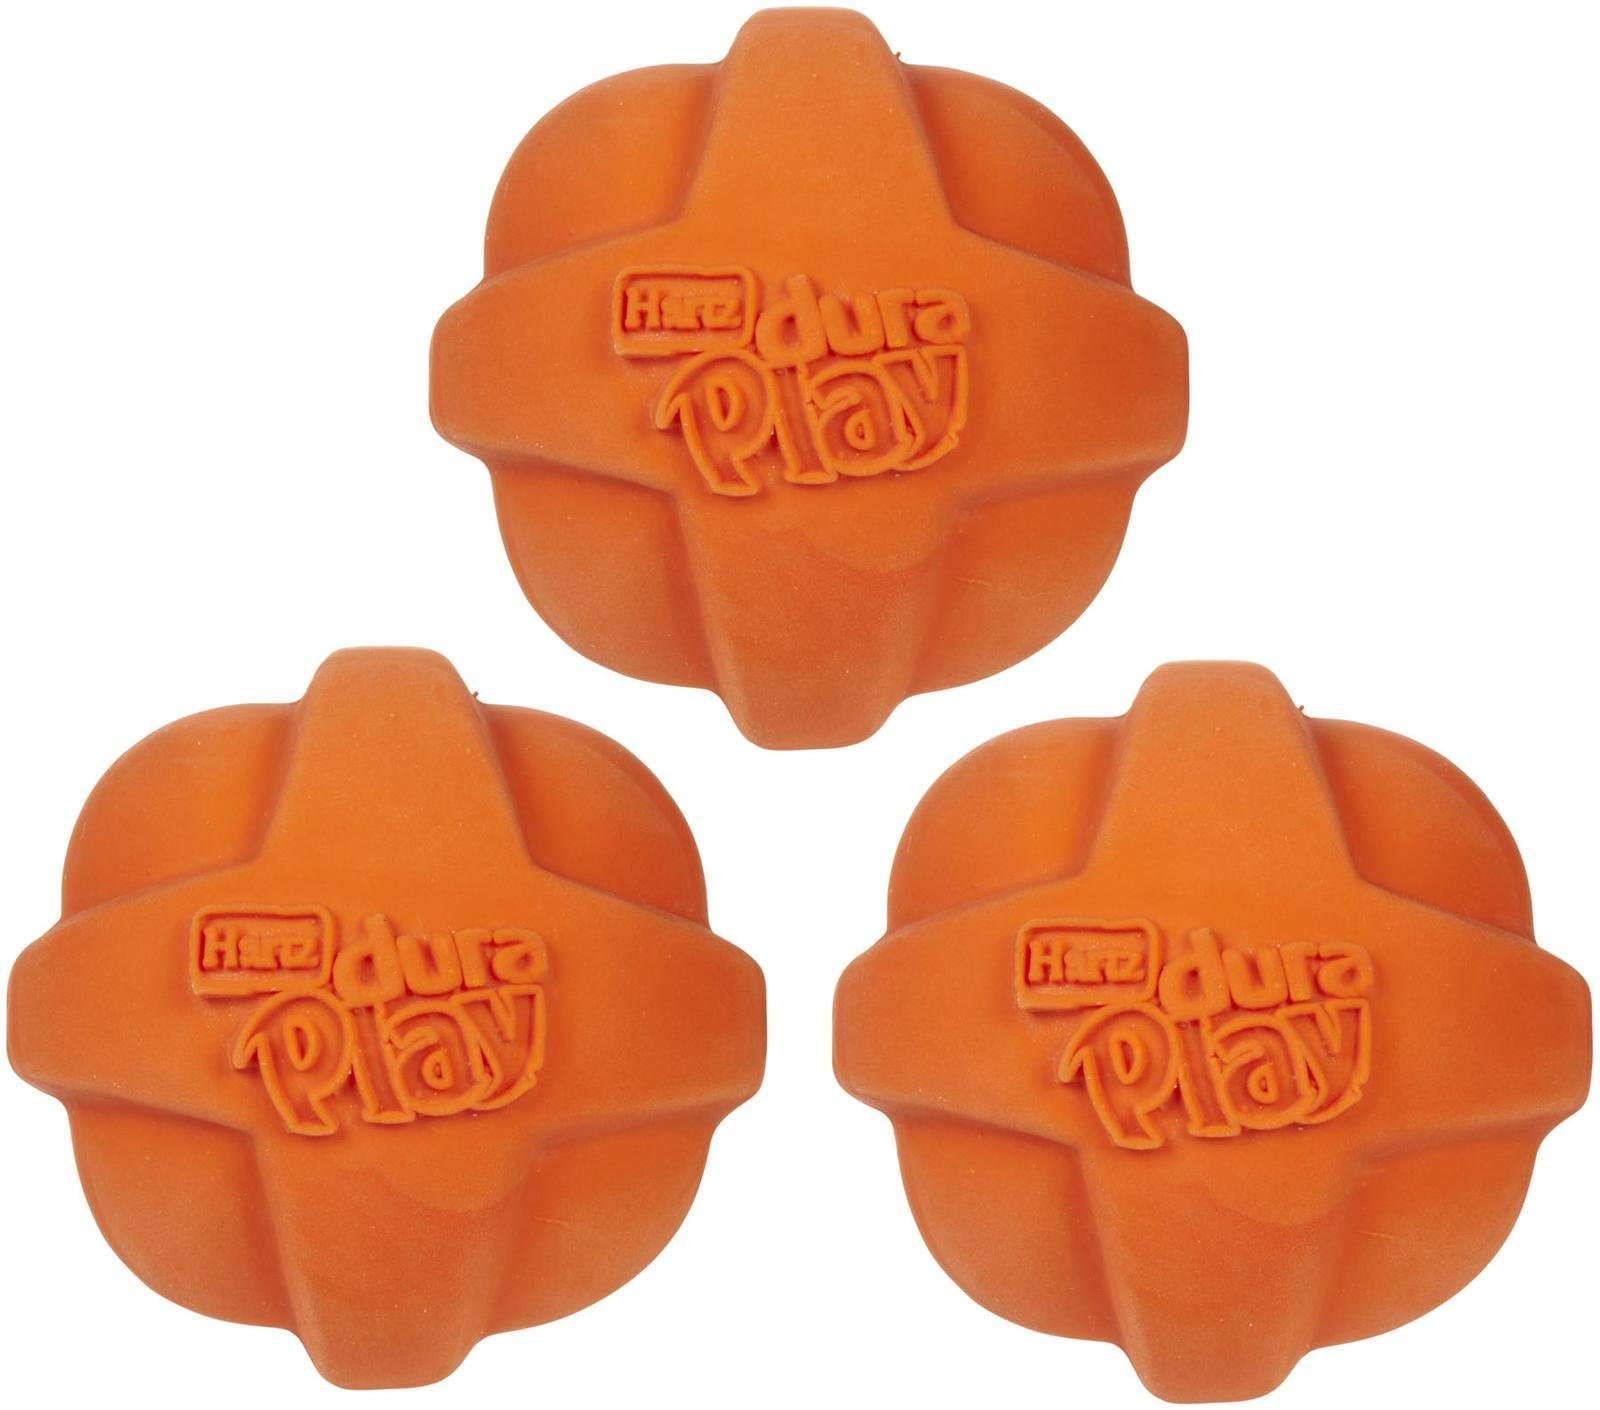 HARTZ Ball Dog Toy - Small - 3 pack - Assorted Colors